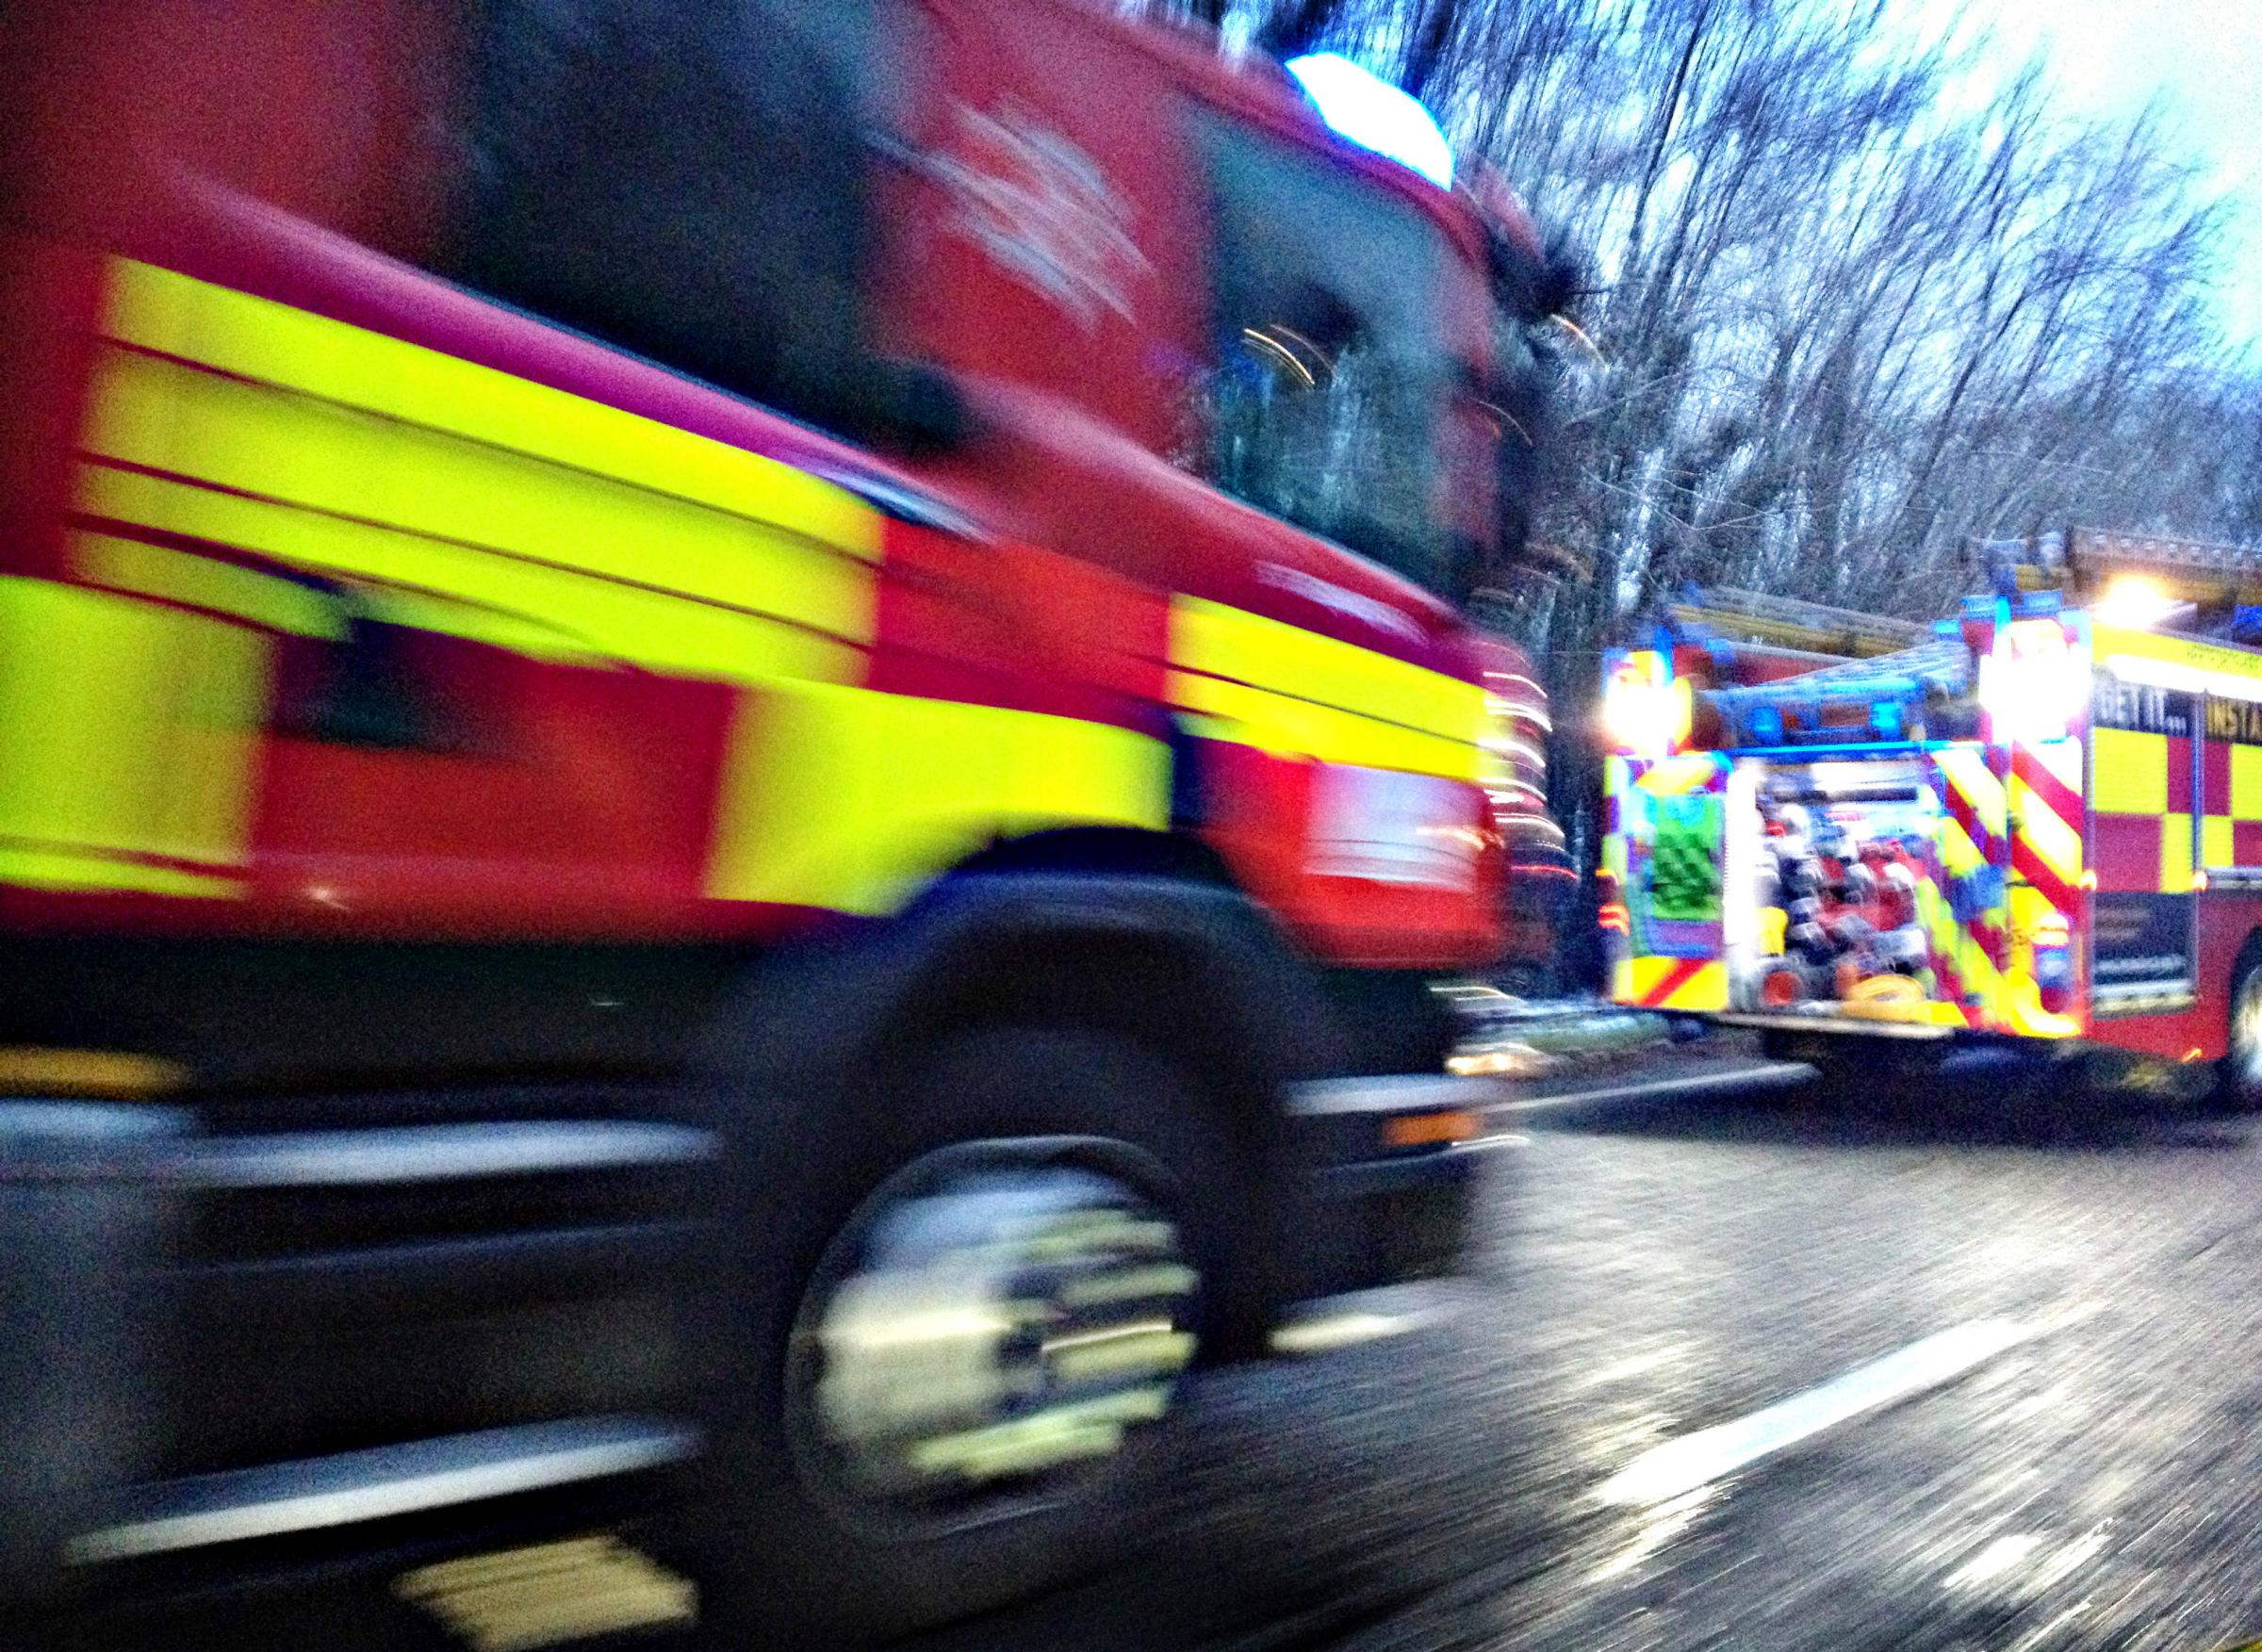 Crews called to chip shop blaze